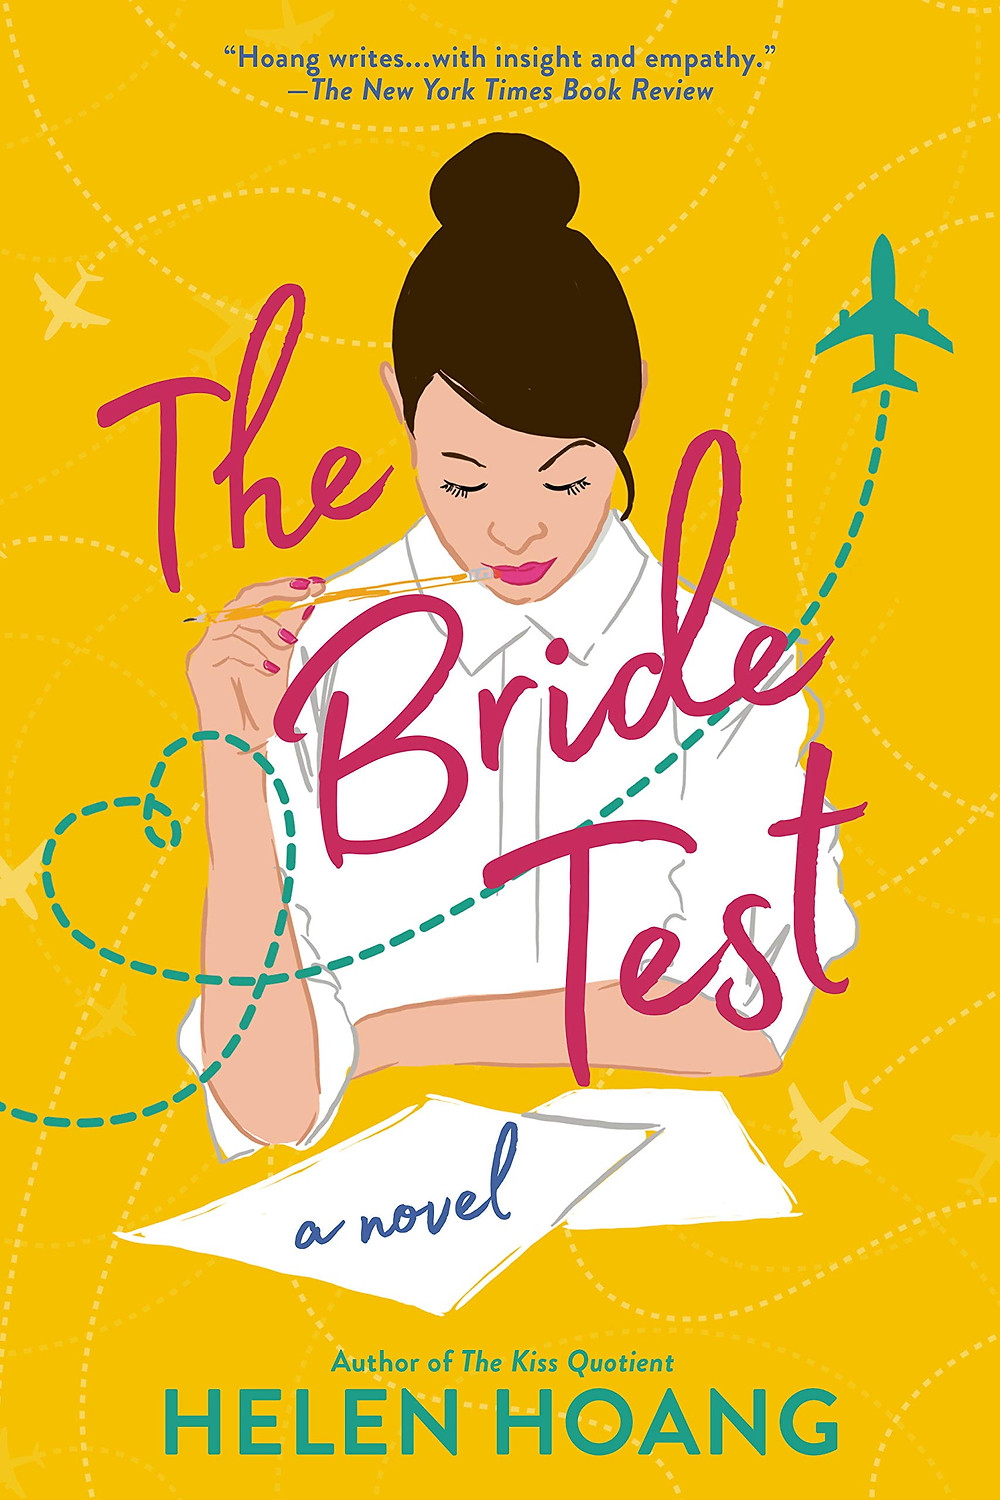 book cover of Helen Hoang's The Bride Test